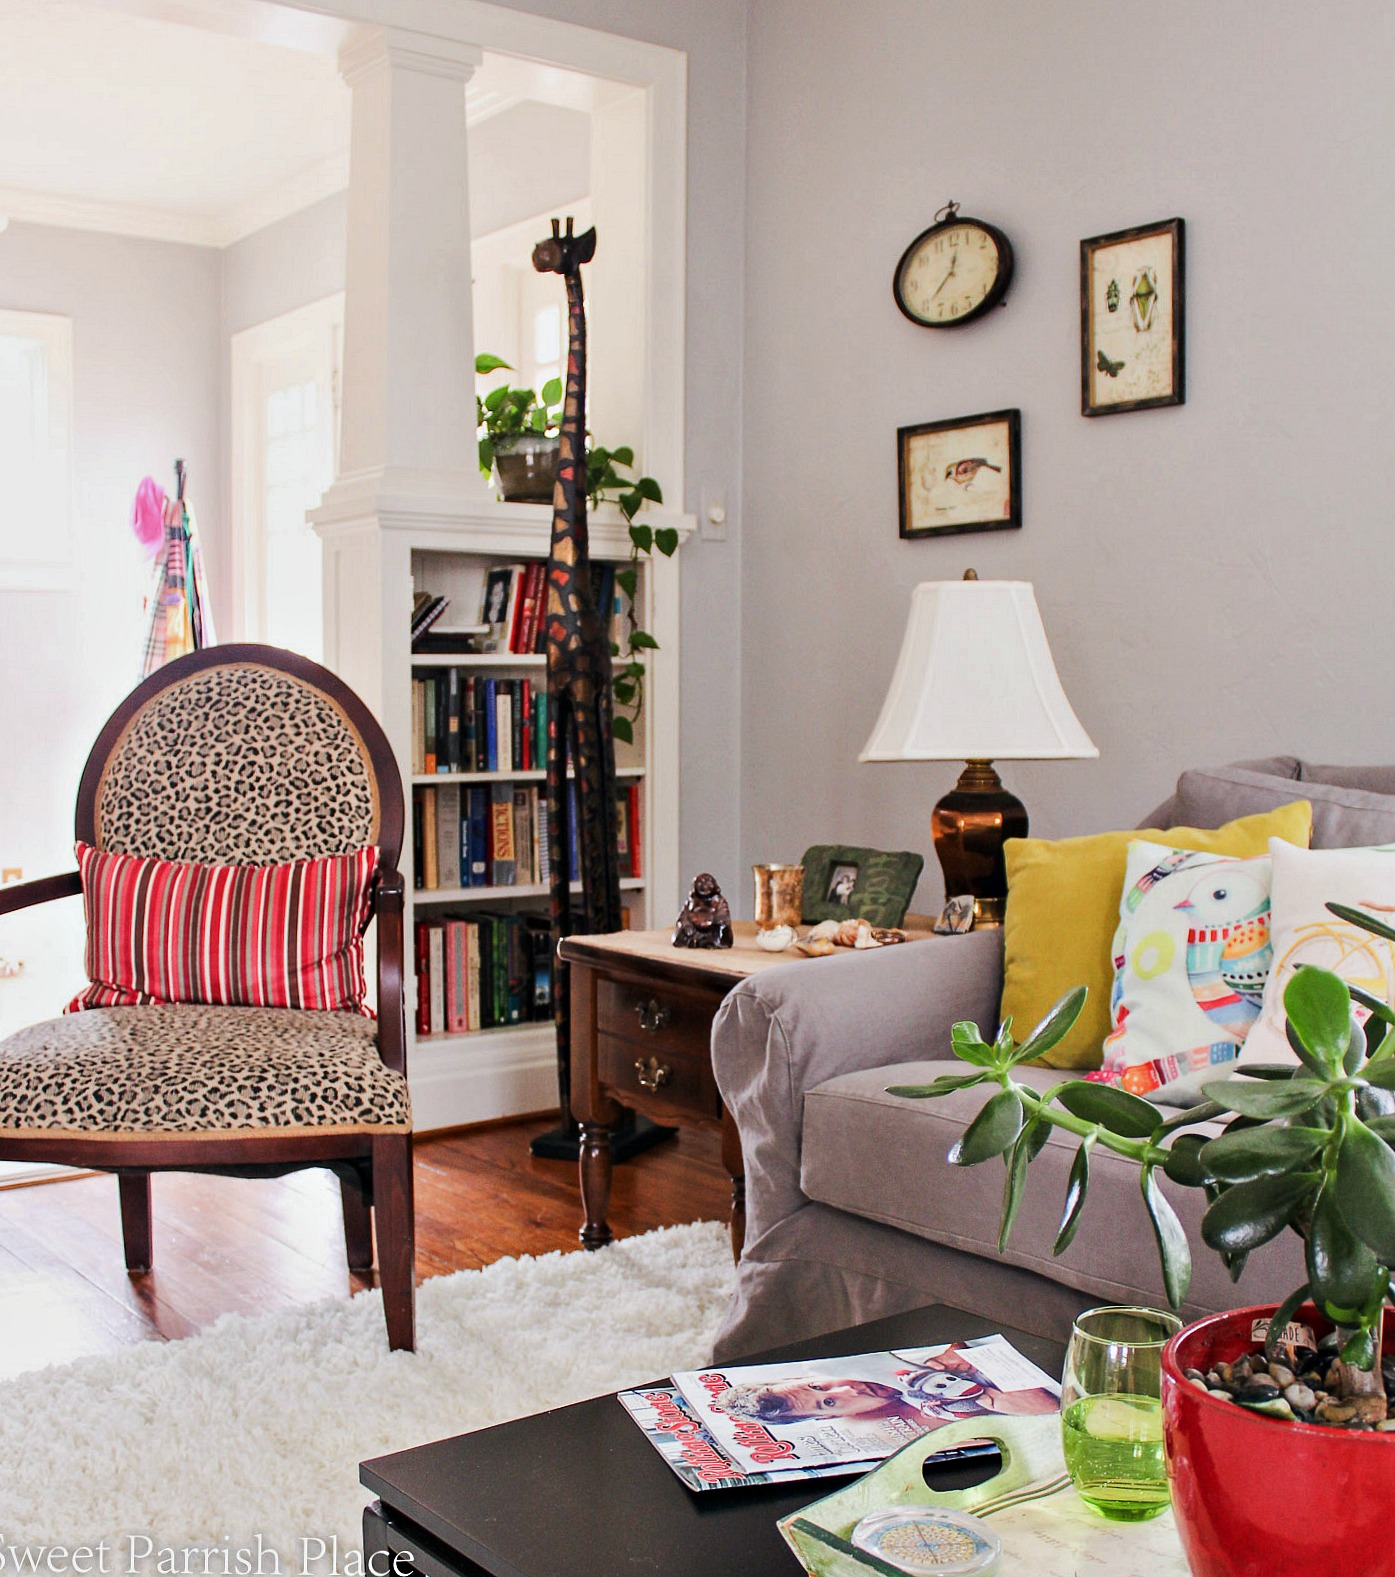 97 year old home tour-leopard-chair